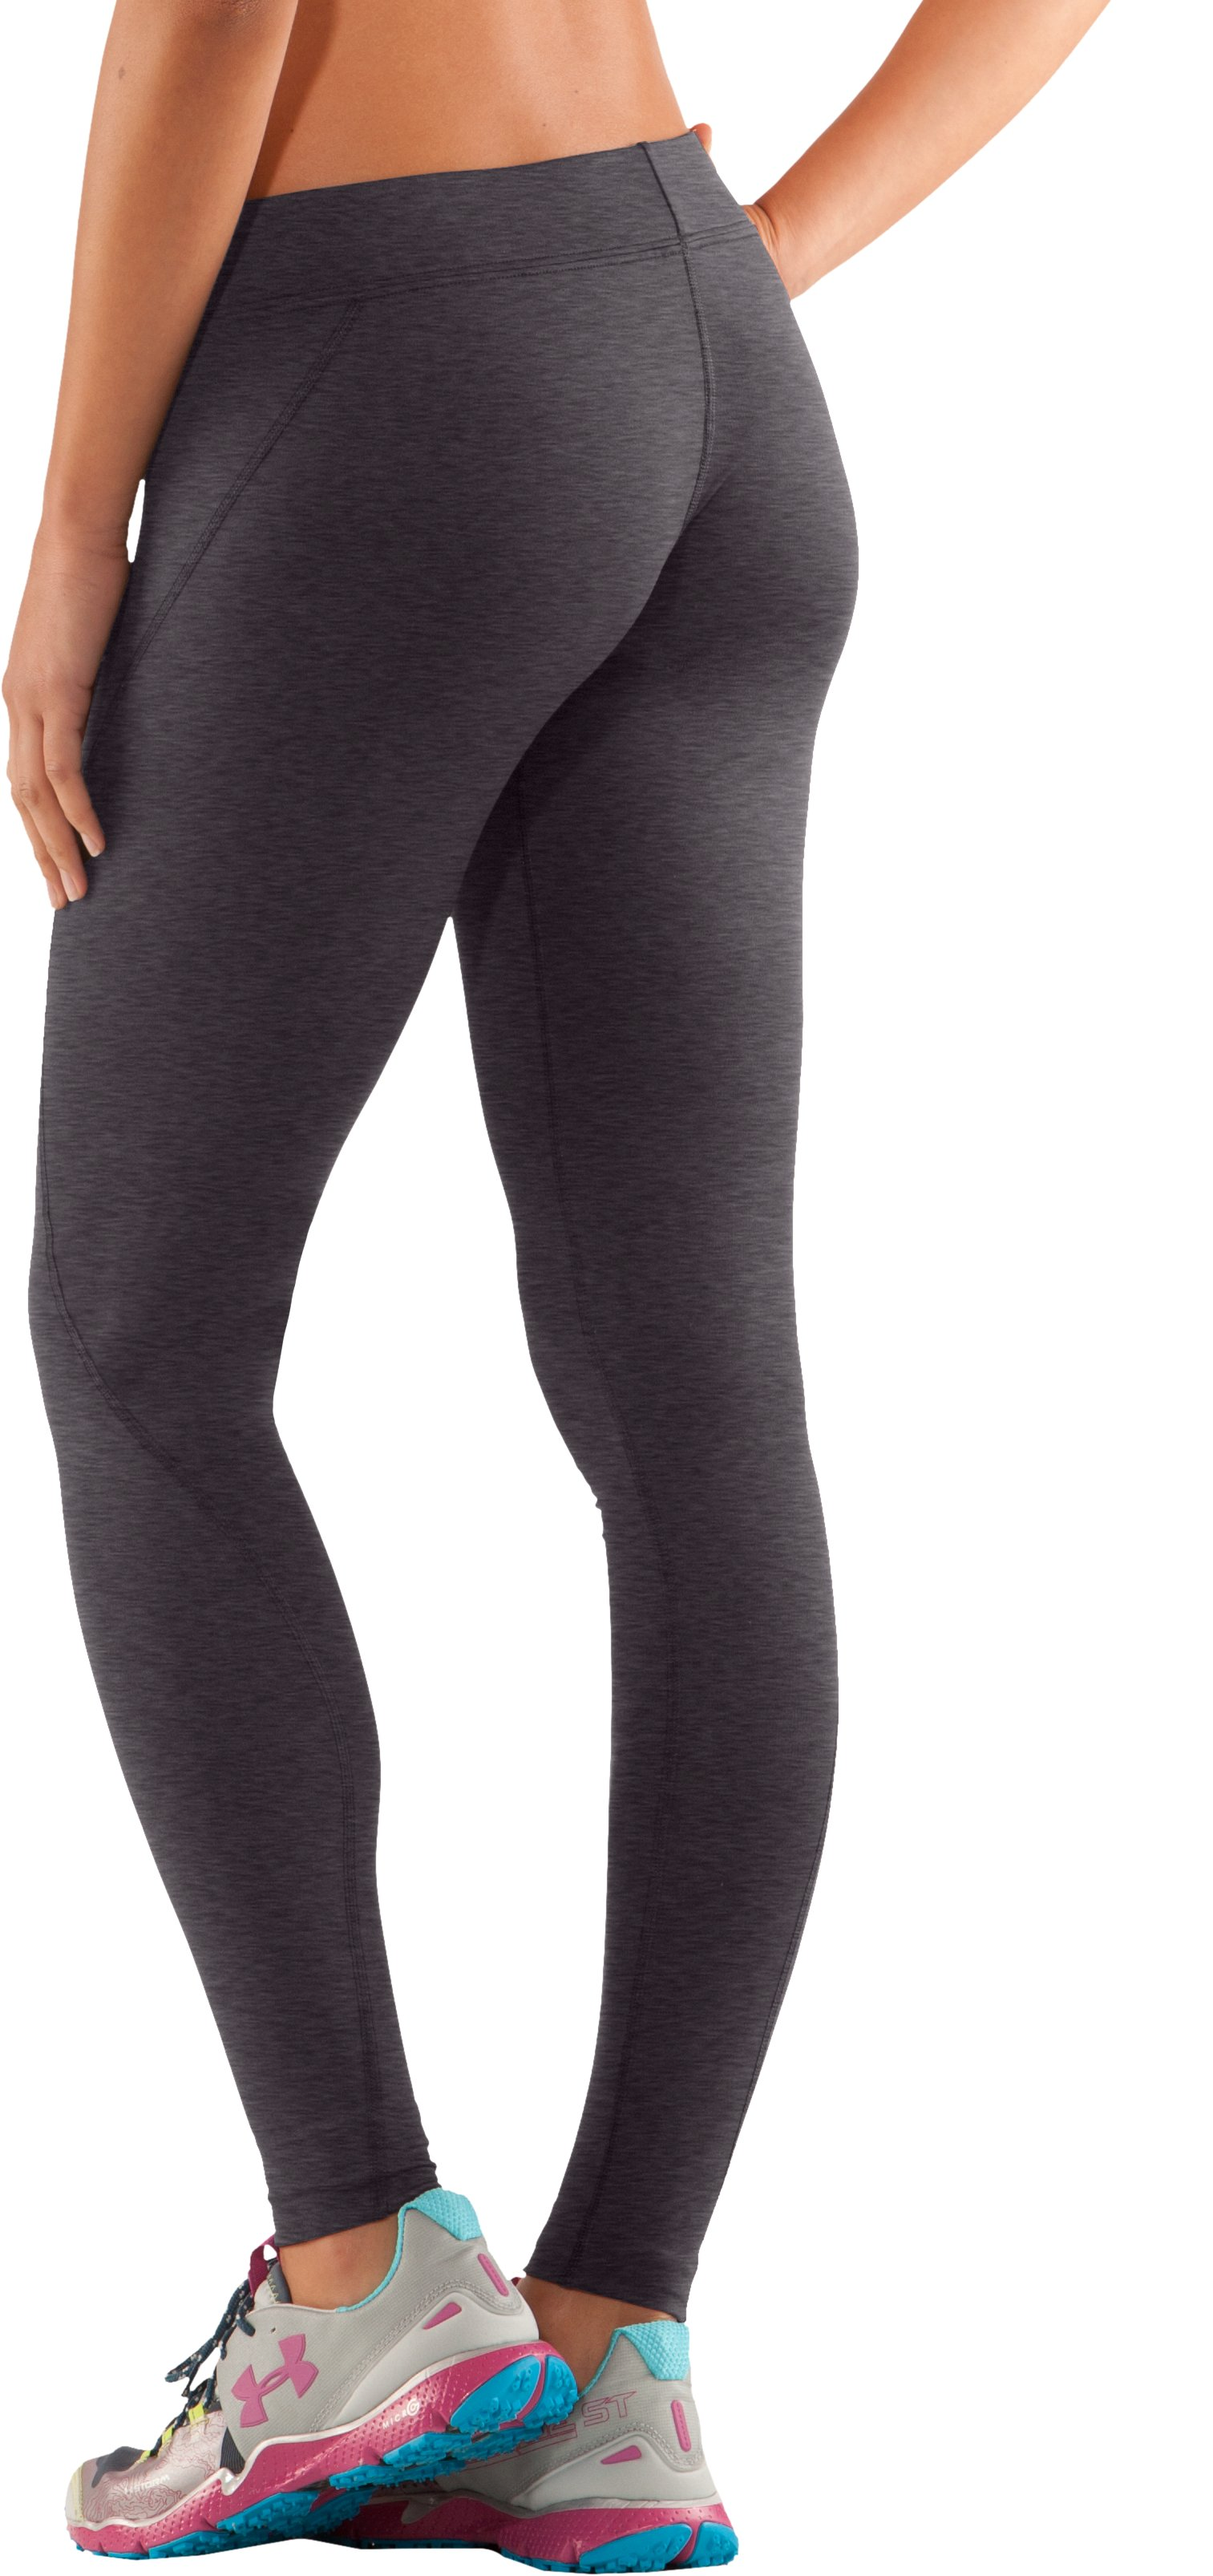 Women's ColdGear® Fitted Leggings, Carbon Heather, undefined